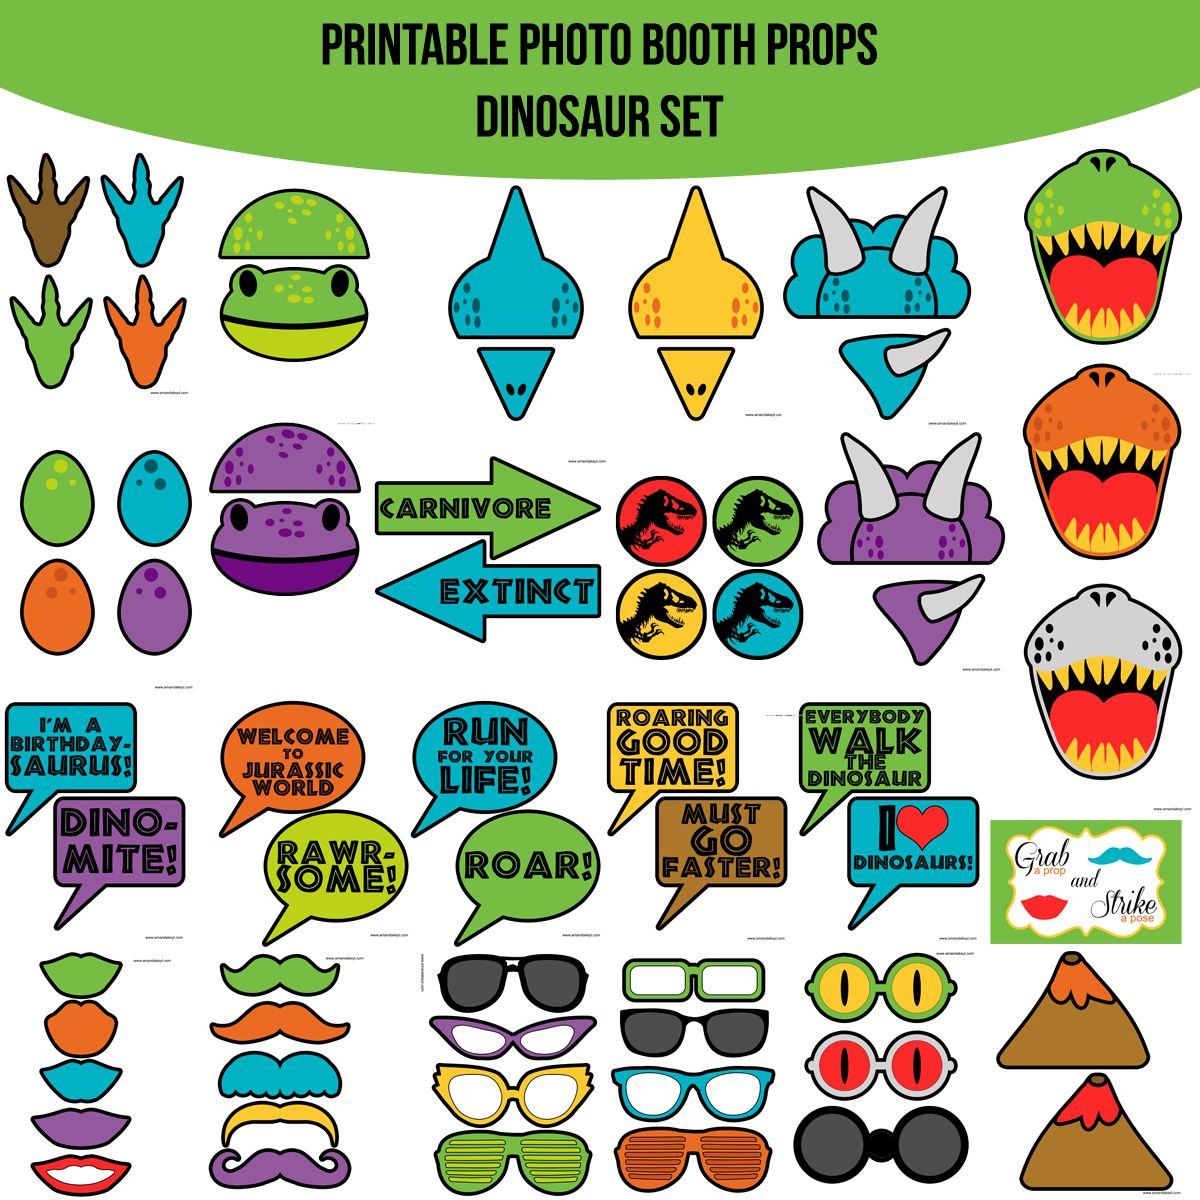 Instant Download Dinosaur Printable Photo Booth Prop Set